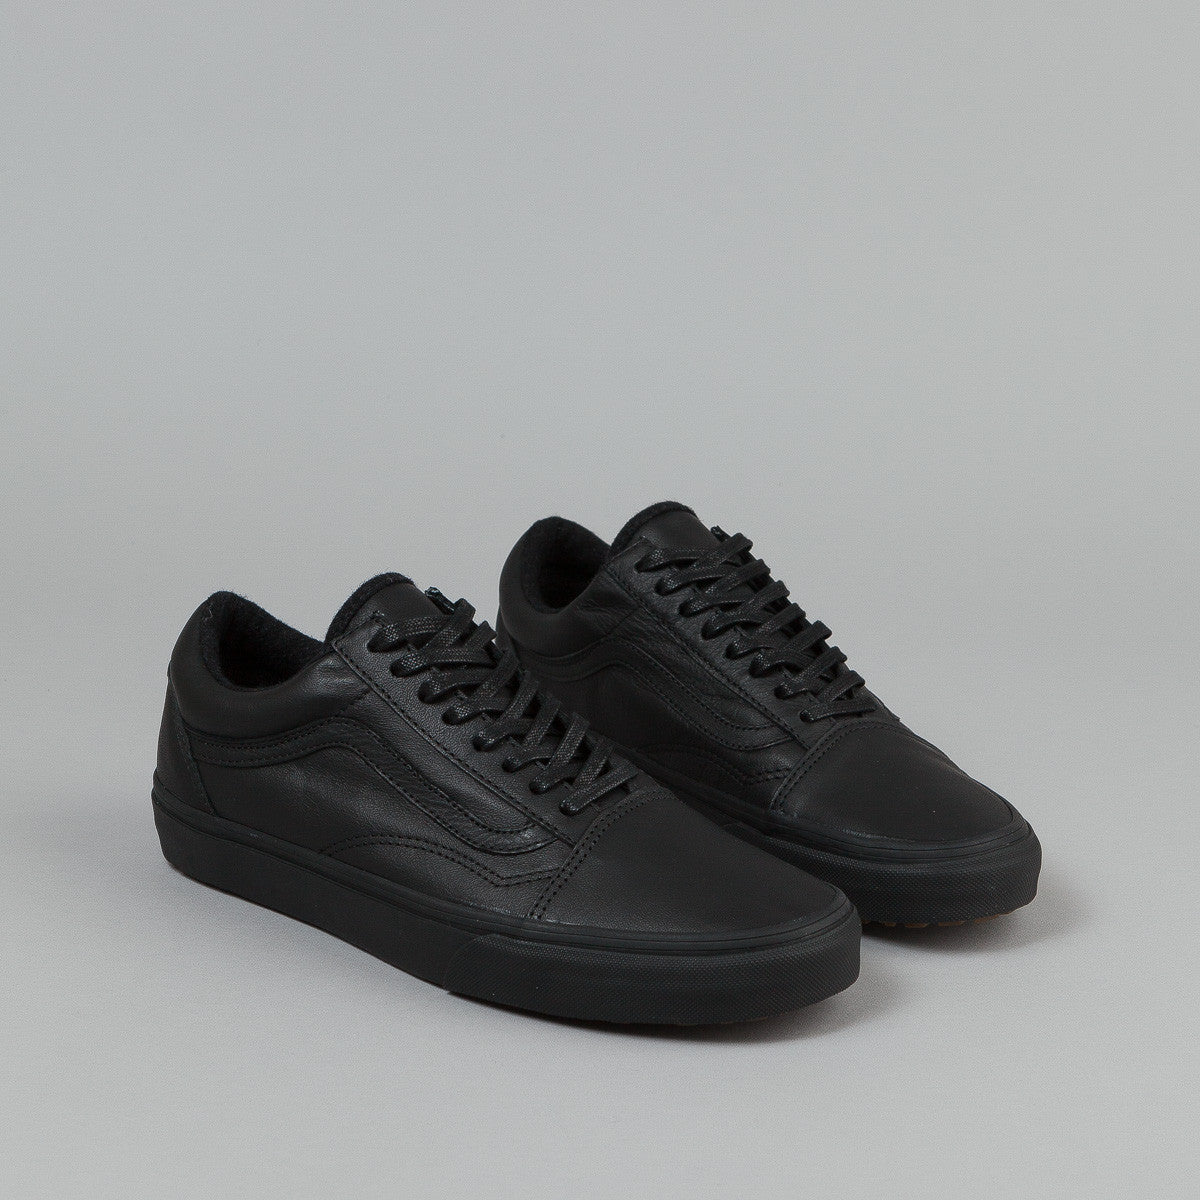 Vans Old Skool Triple Black